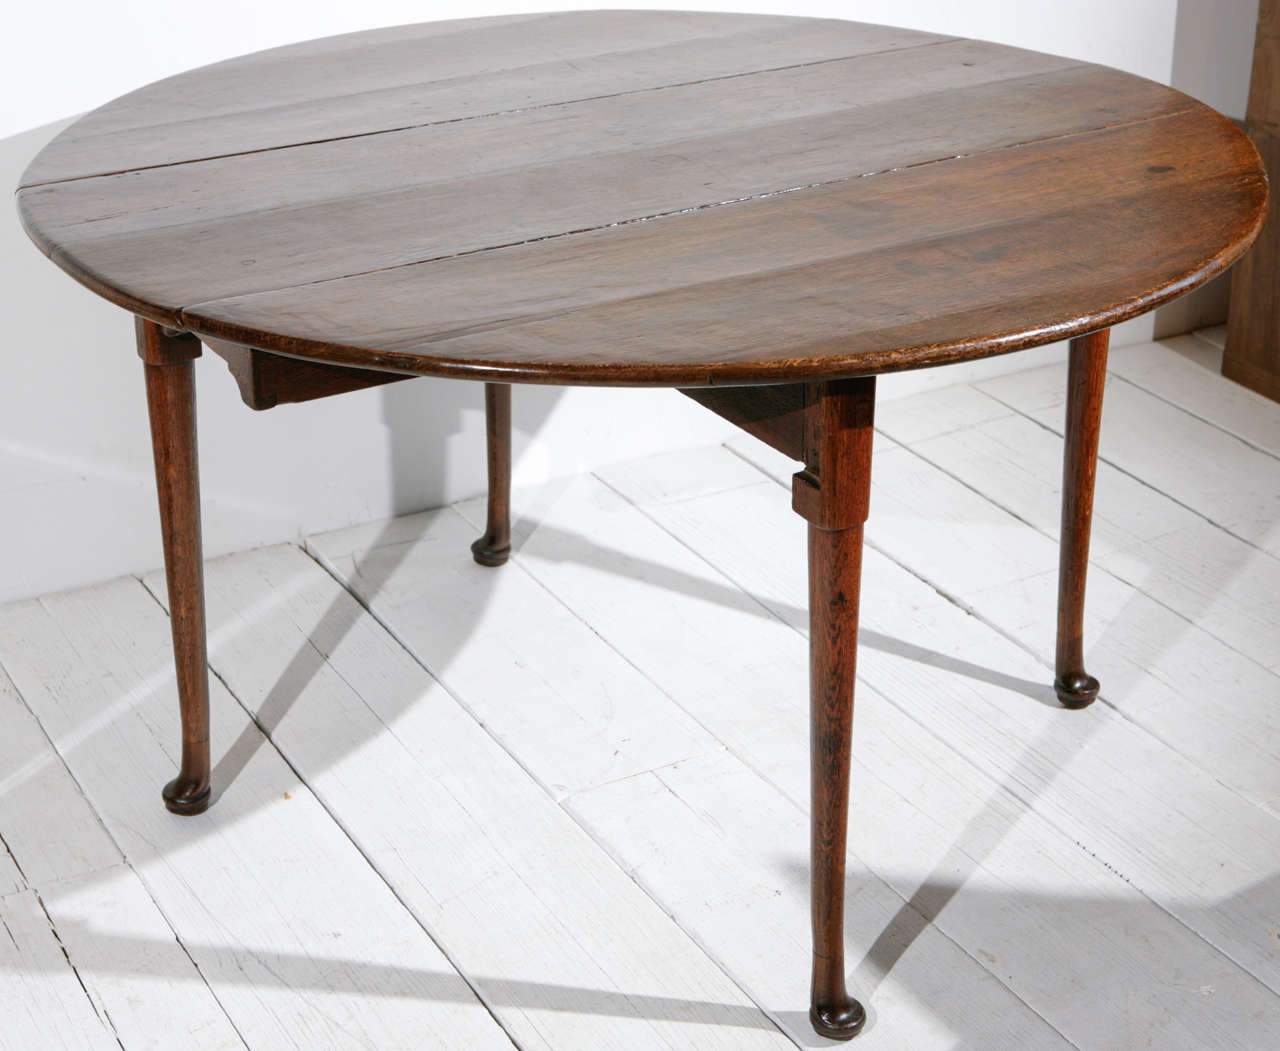 Queen Anne Walnut Drop Leaf Round Dining Table and Console  : MG4557 from www.1stdibs.com size 1280 x 1051 jpeg 92kB